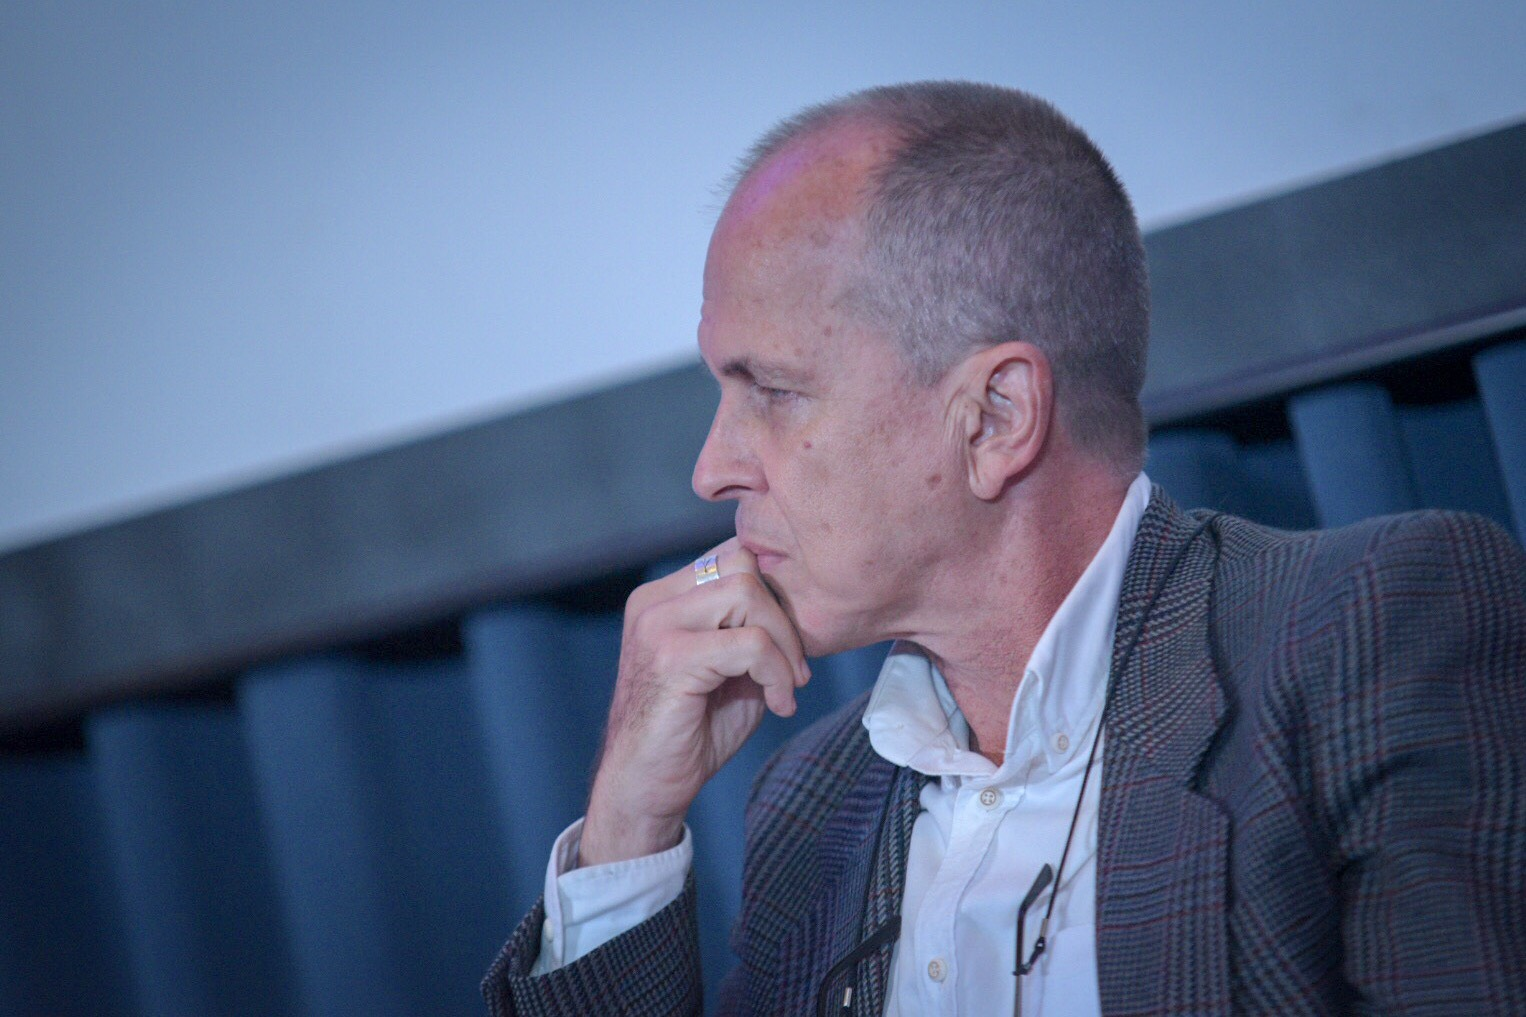 FAKE NEWS LAW 'DANGEROUS'. Peter Greste during his Democracy and Disinformation Forum panel at the Ateneo Law School in Makati on February 12, 2018. Photo by LeAnne Jazul/Rappler